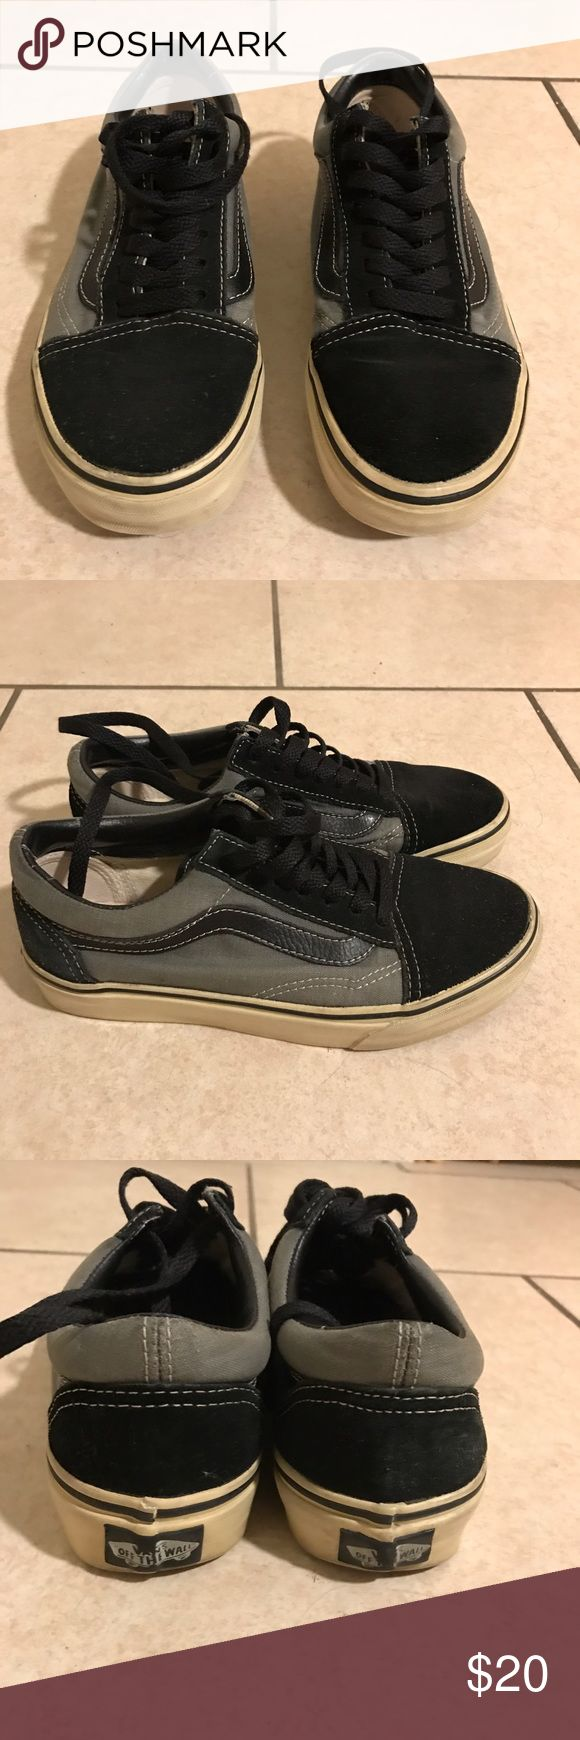 Used Vans Used Vans, they were my personal shoes. Pretty great condition for being used! Vans Shoes Sneakers